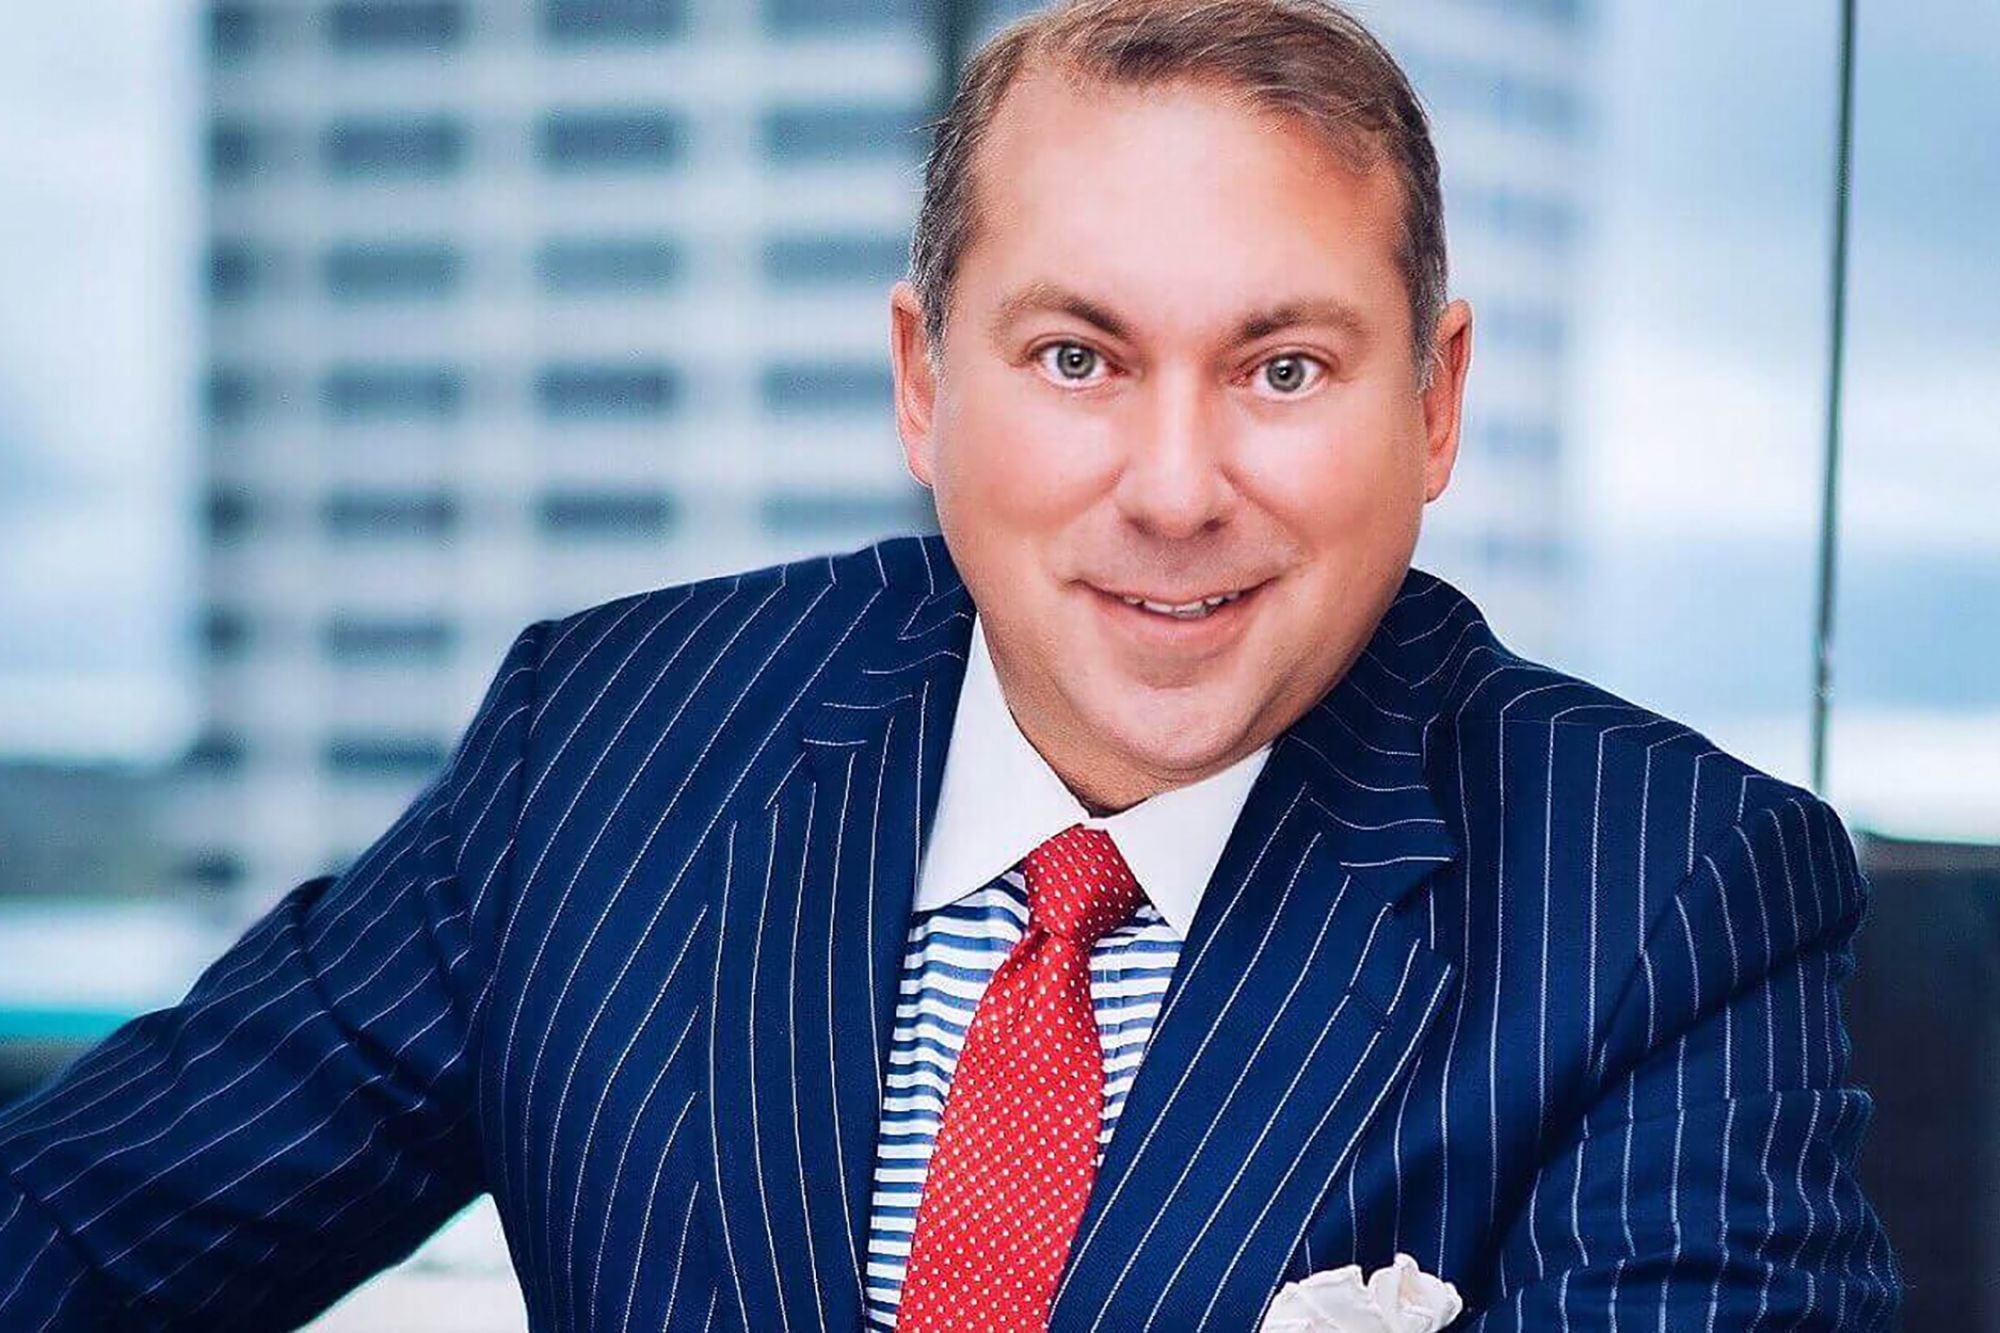 How James Daily Went From Whistleblower to Millionaire Lawyer Taking Down Fraud